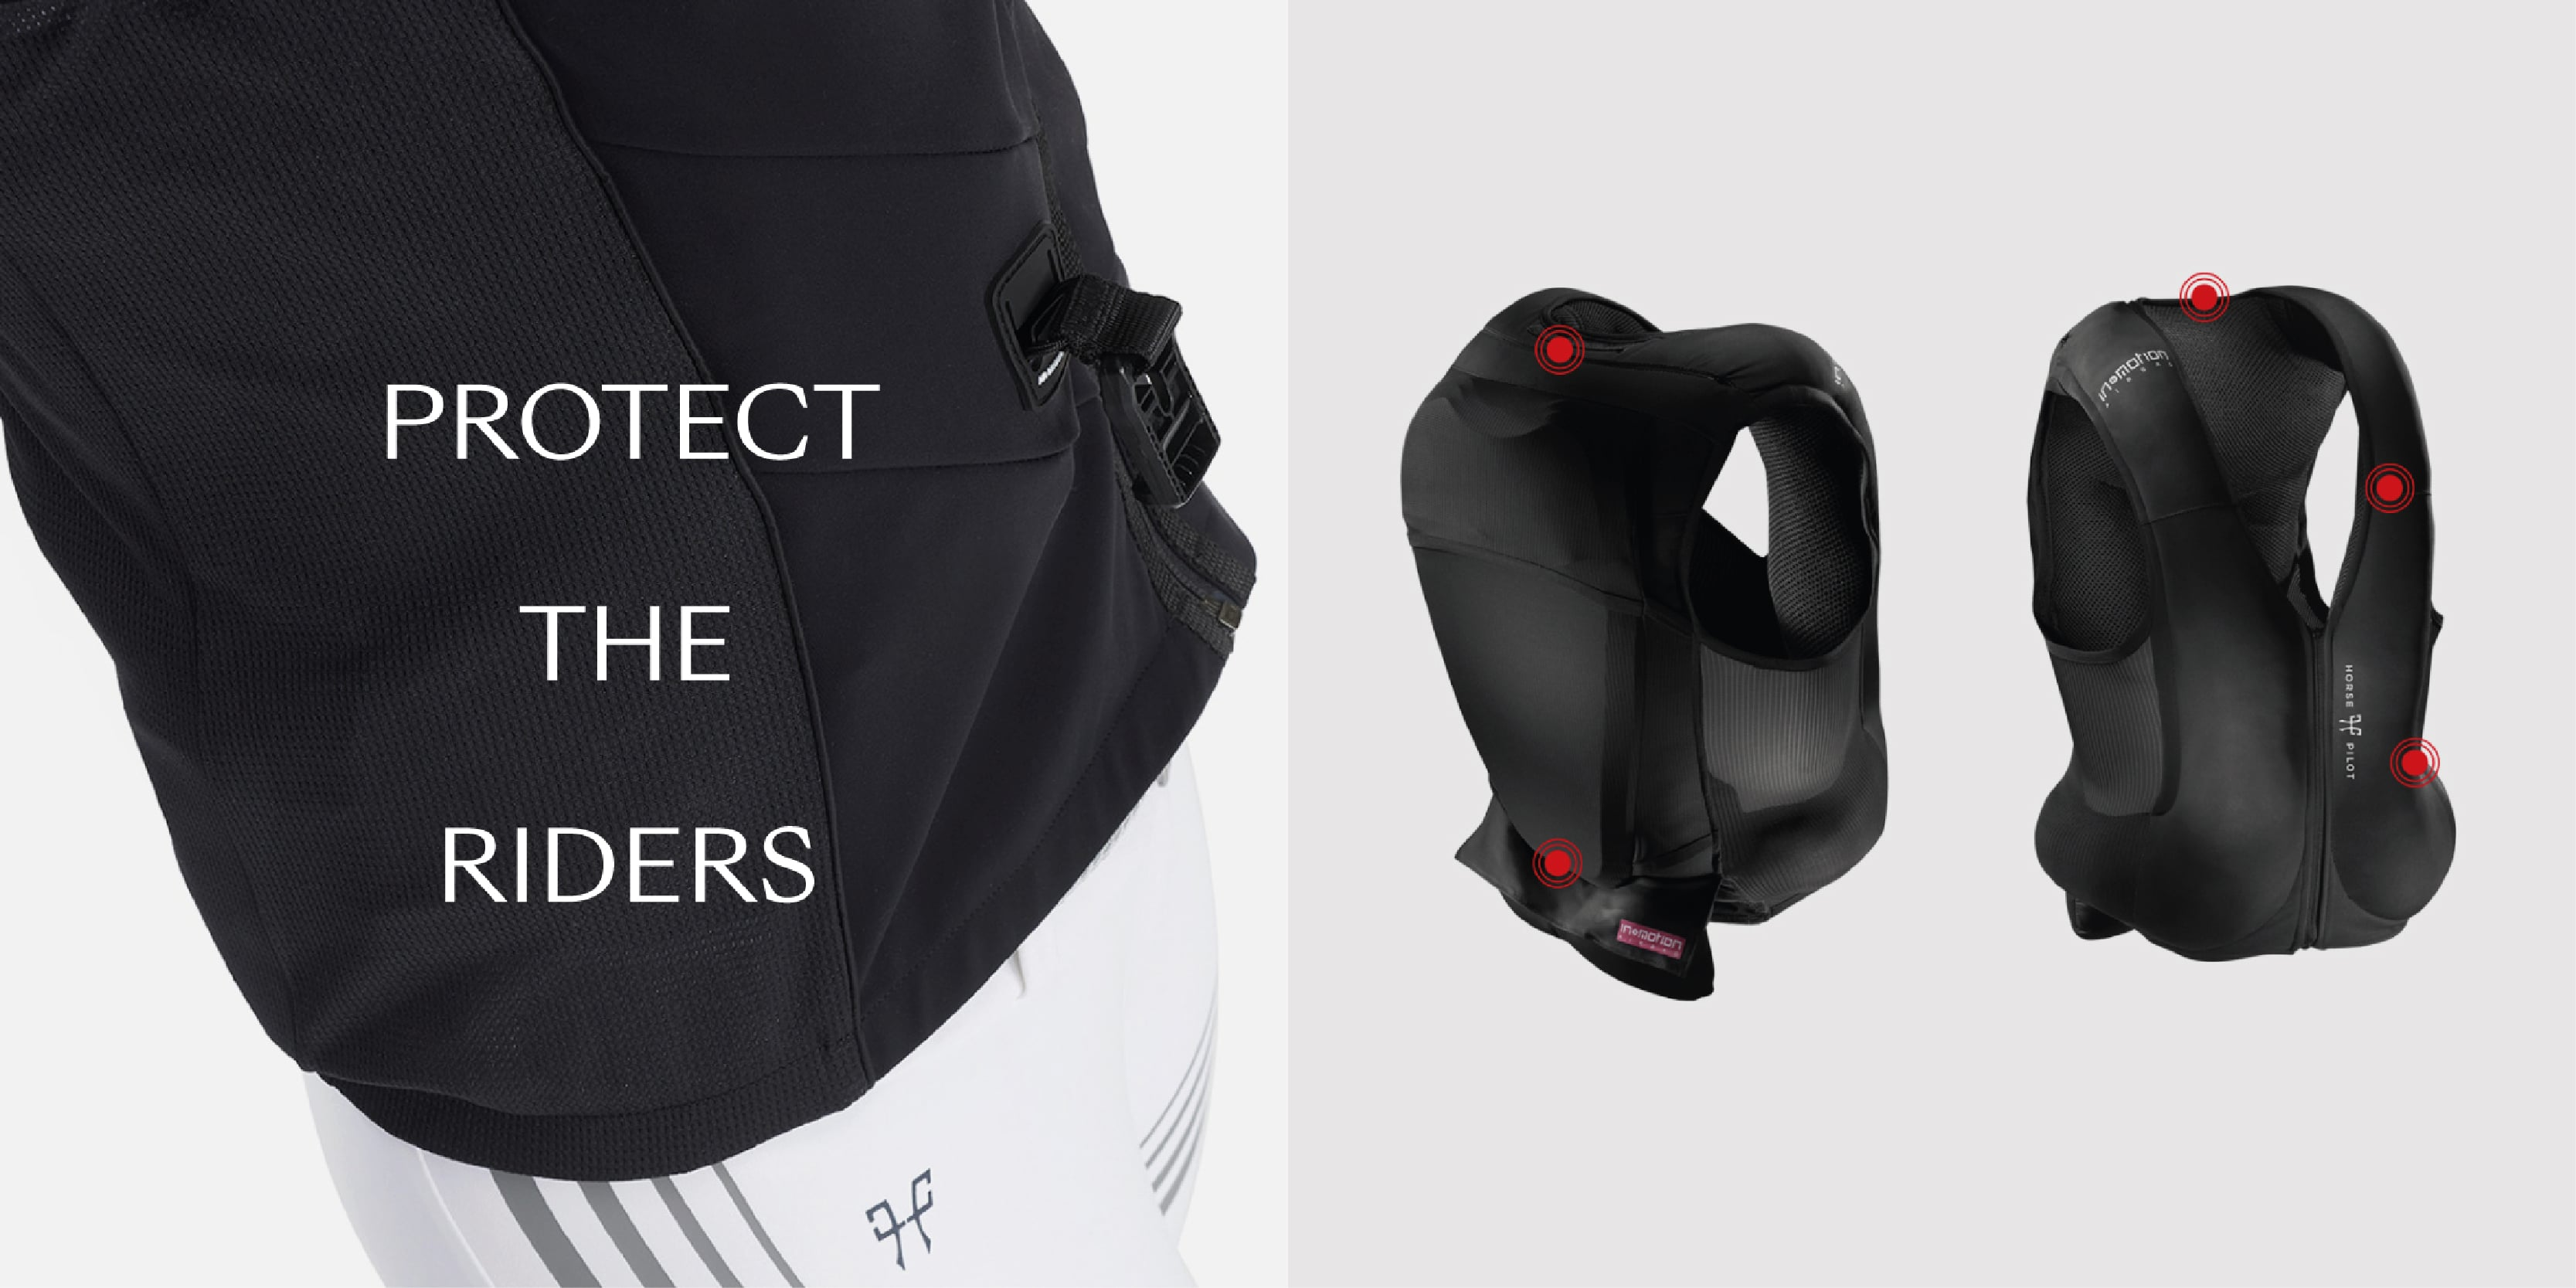 The rider airbag waistcoat inflates at the rear and front to protect the rider's vital areas.